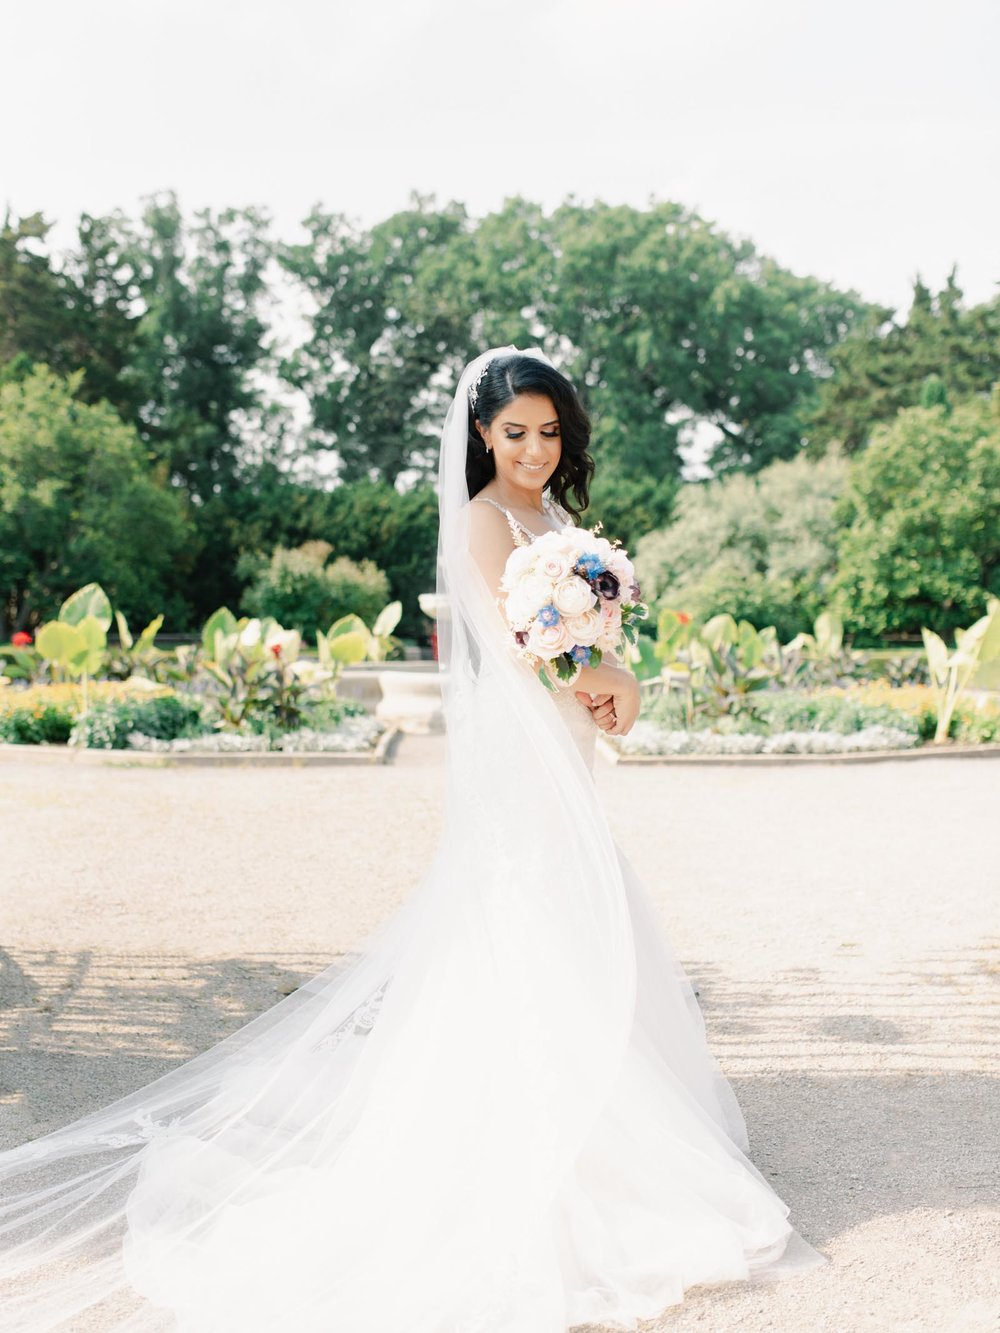 Wedding Photographer in Hamilton